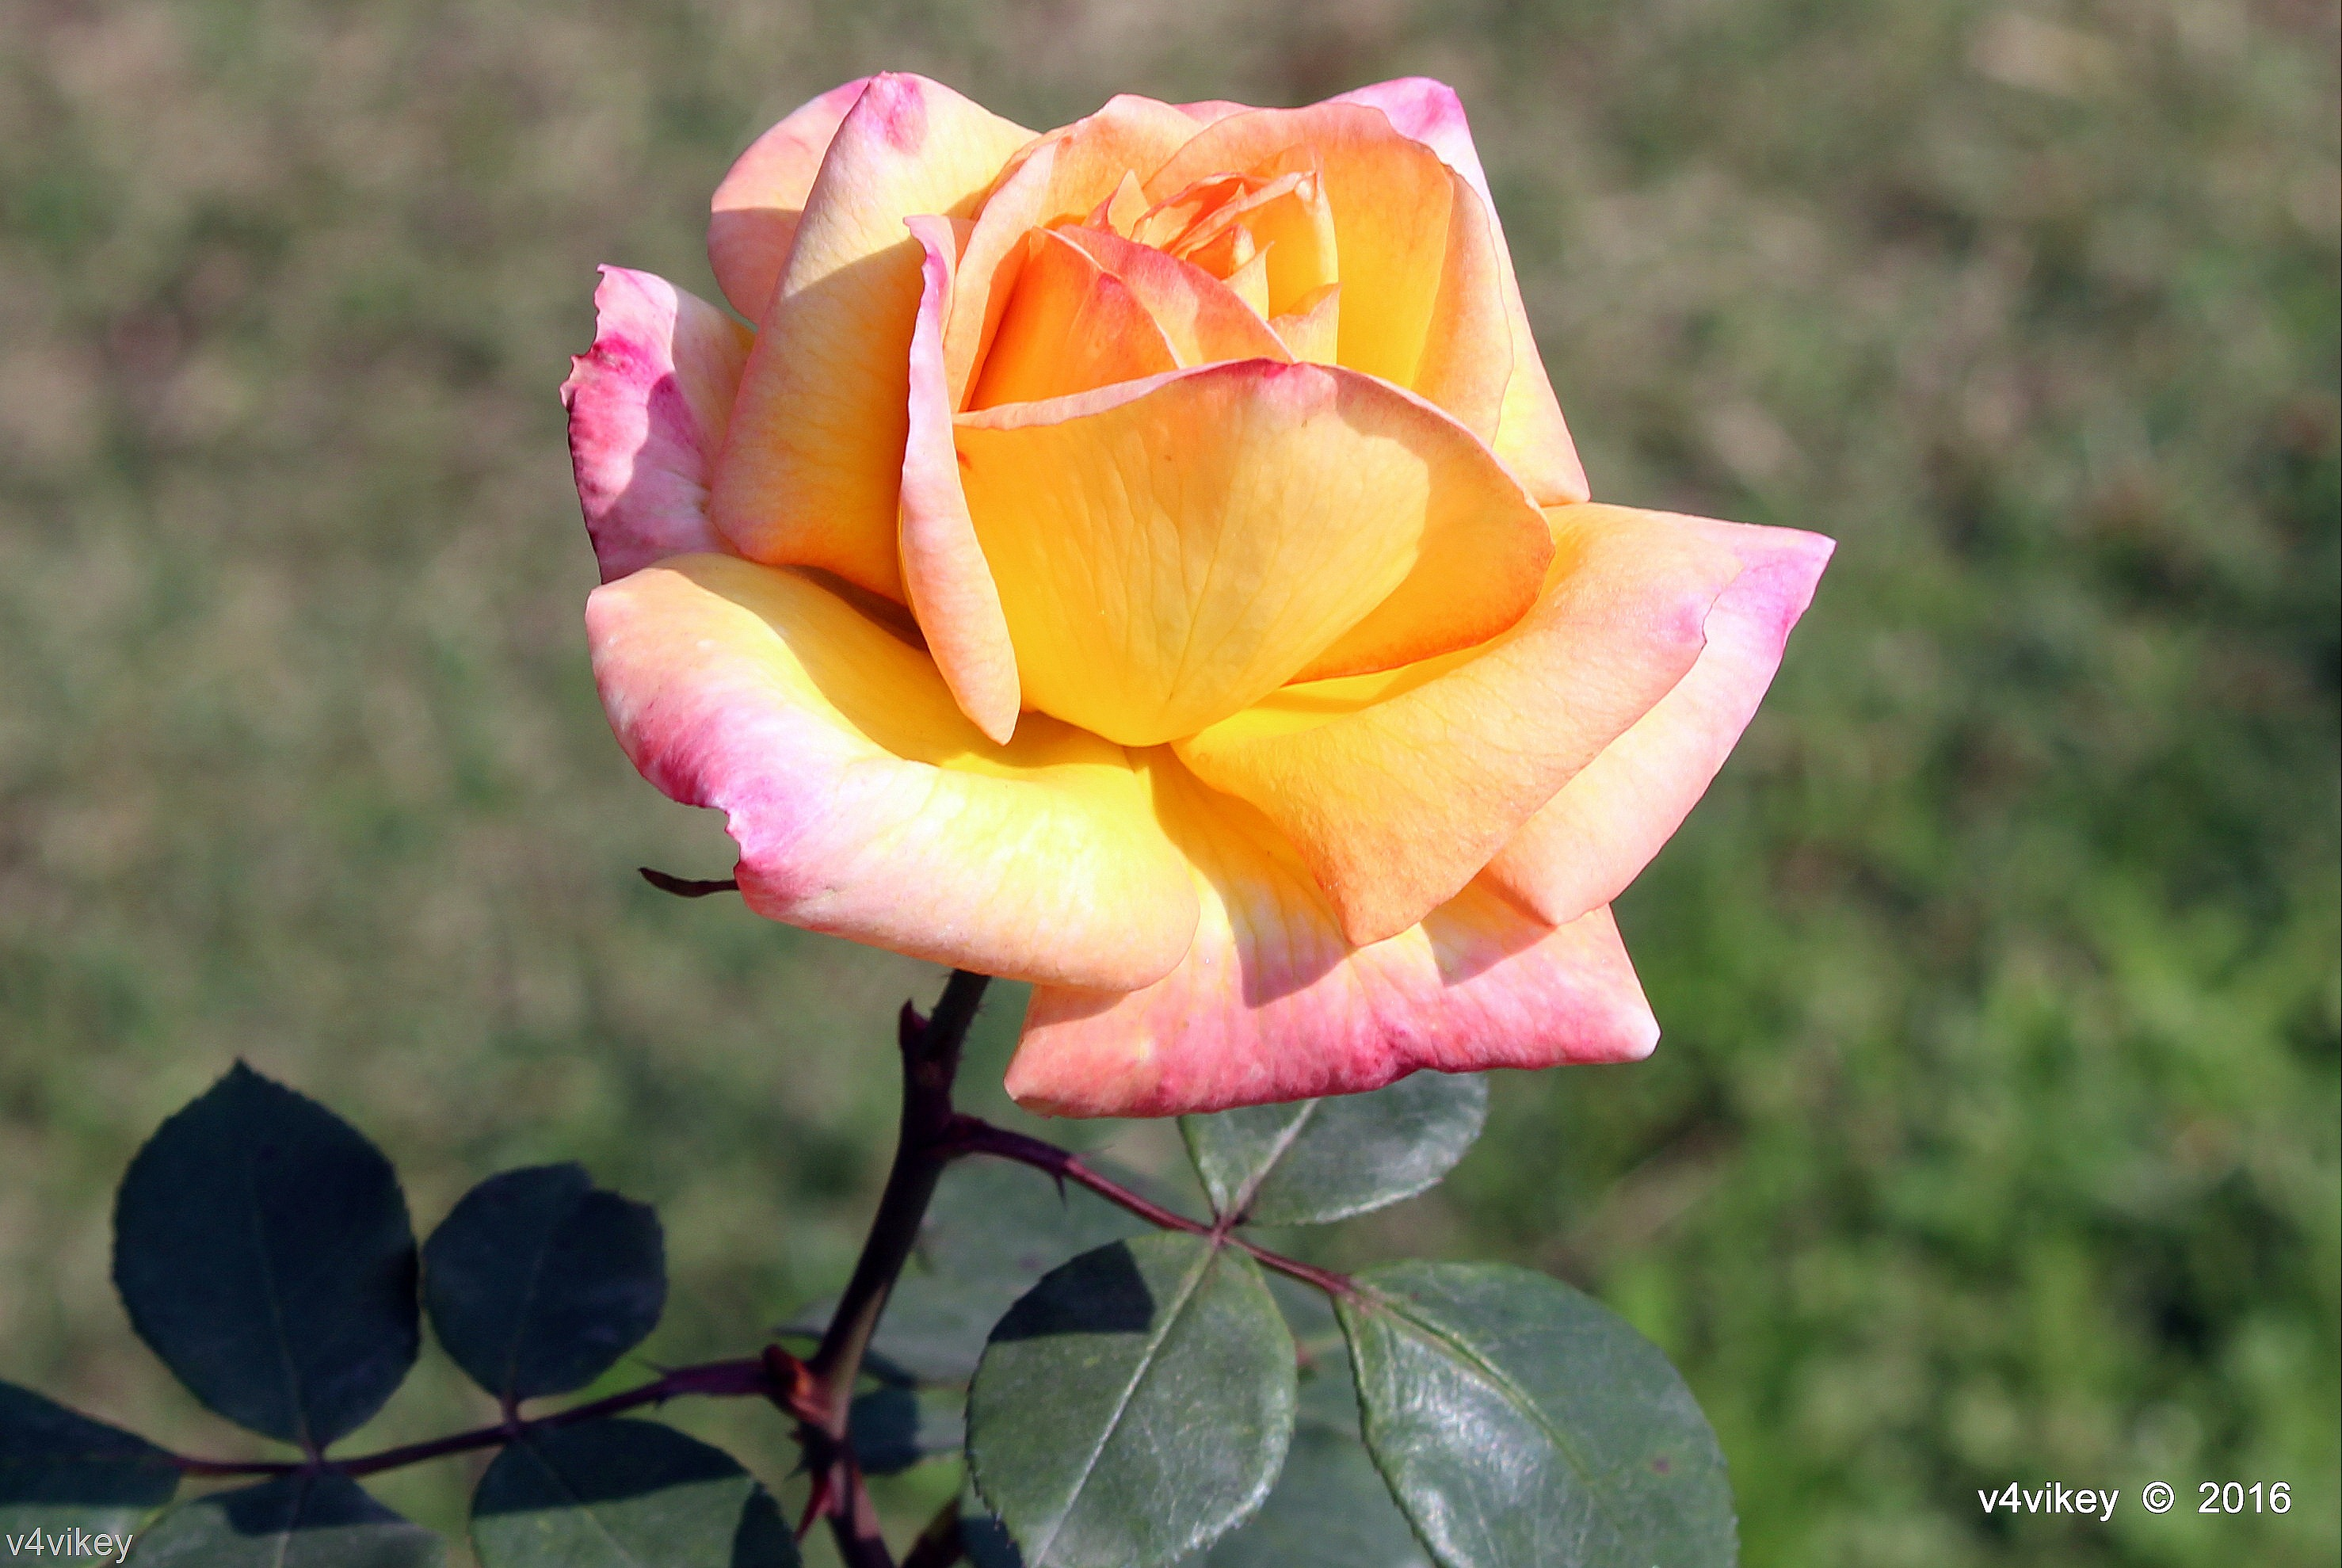 Double shaded pink yellow rose flower wallpaper tadka bees knees rose flower mightylinksfo